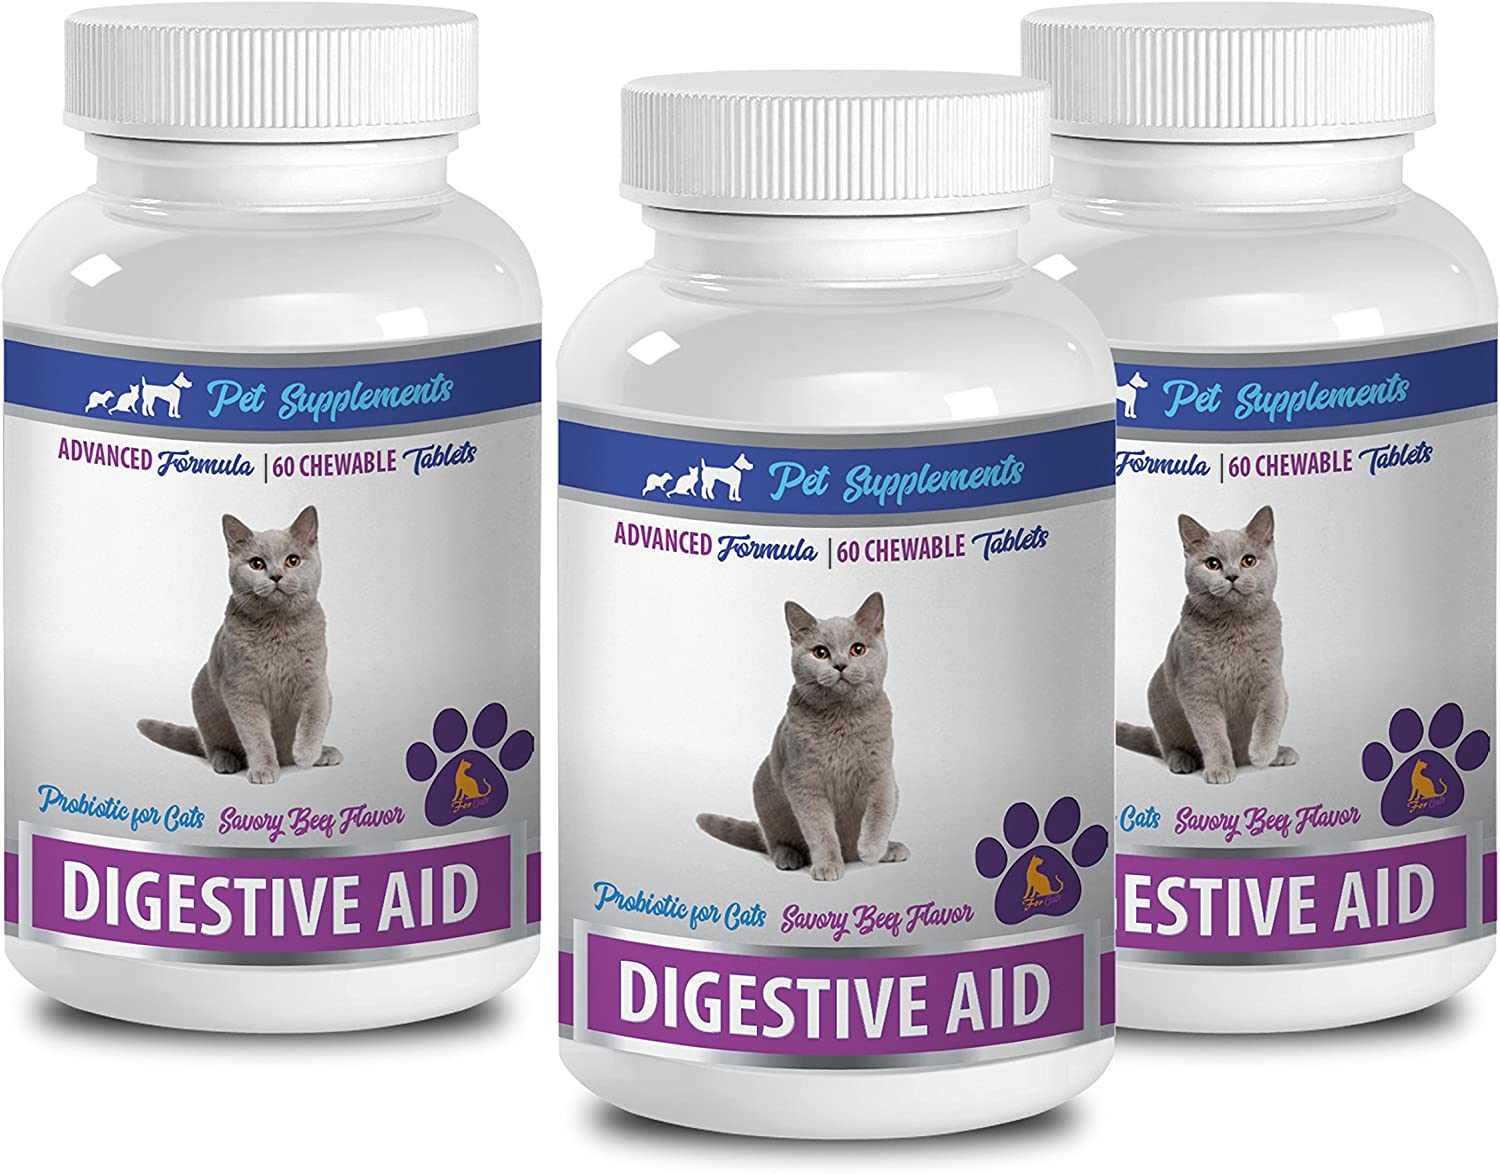 PET SUPPLEMENTS Sensitive Stomach cat for AID Food Digestive - Challenge the lowest price of New Free Shipping Japan